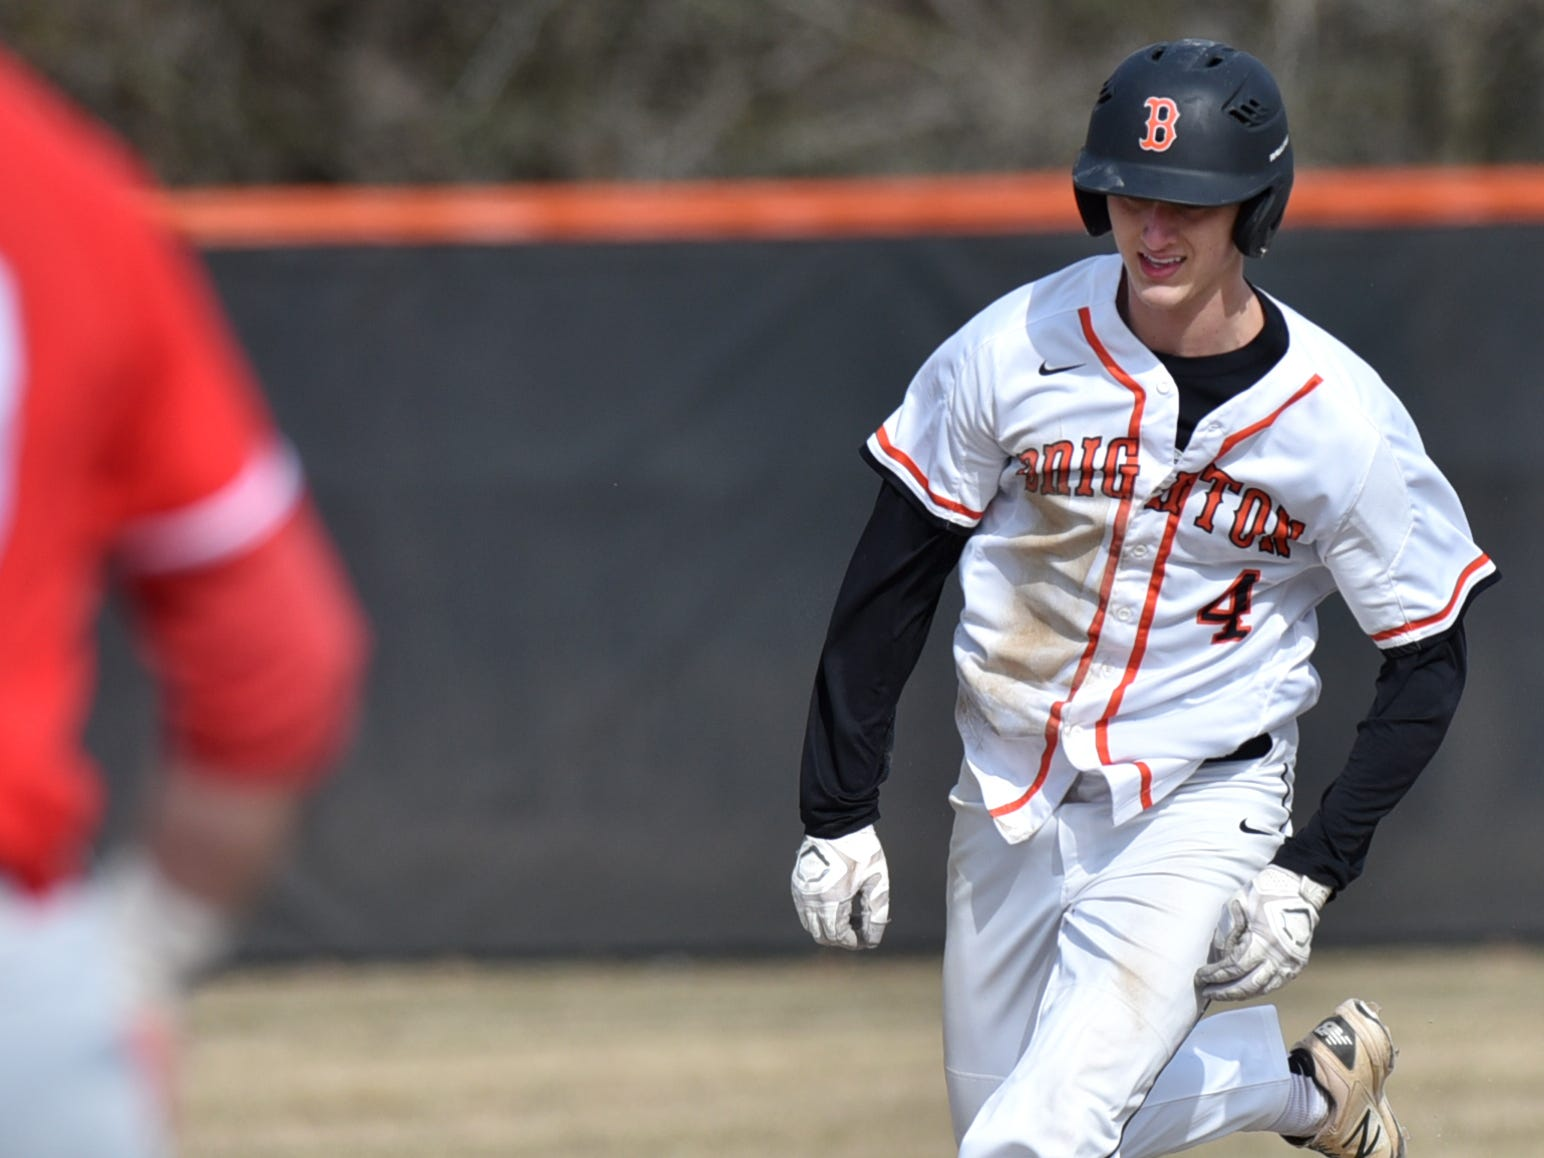 Brighton's Mitchell Marvin heads to third base against Canton on Tuesday, April 2, 2019.